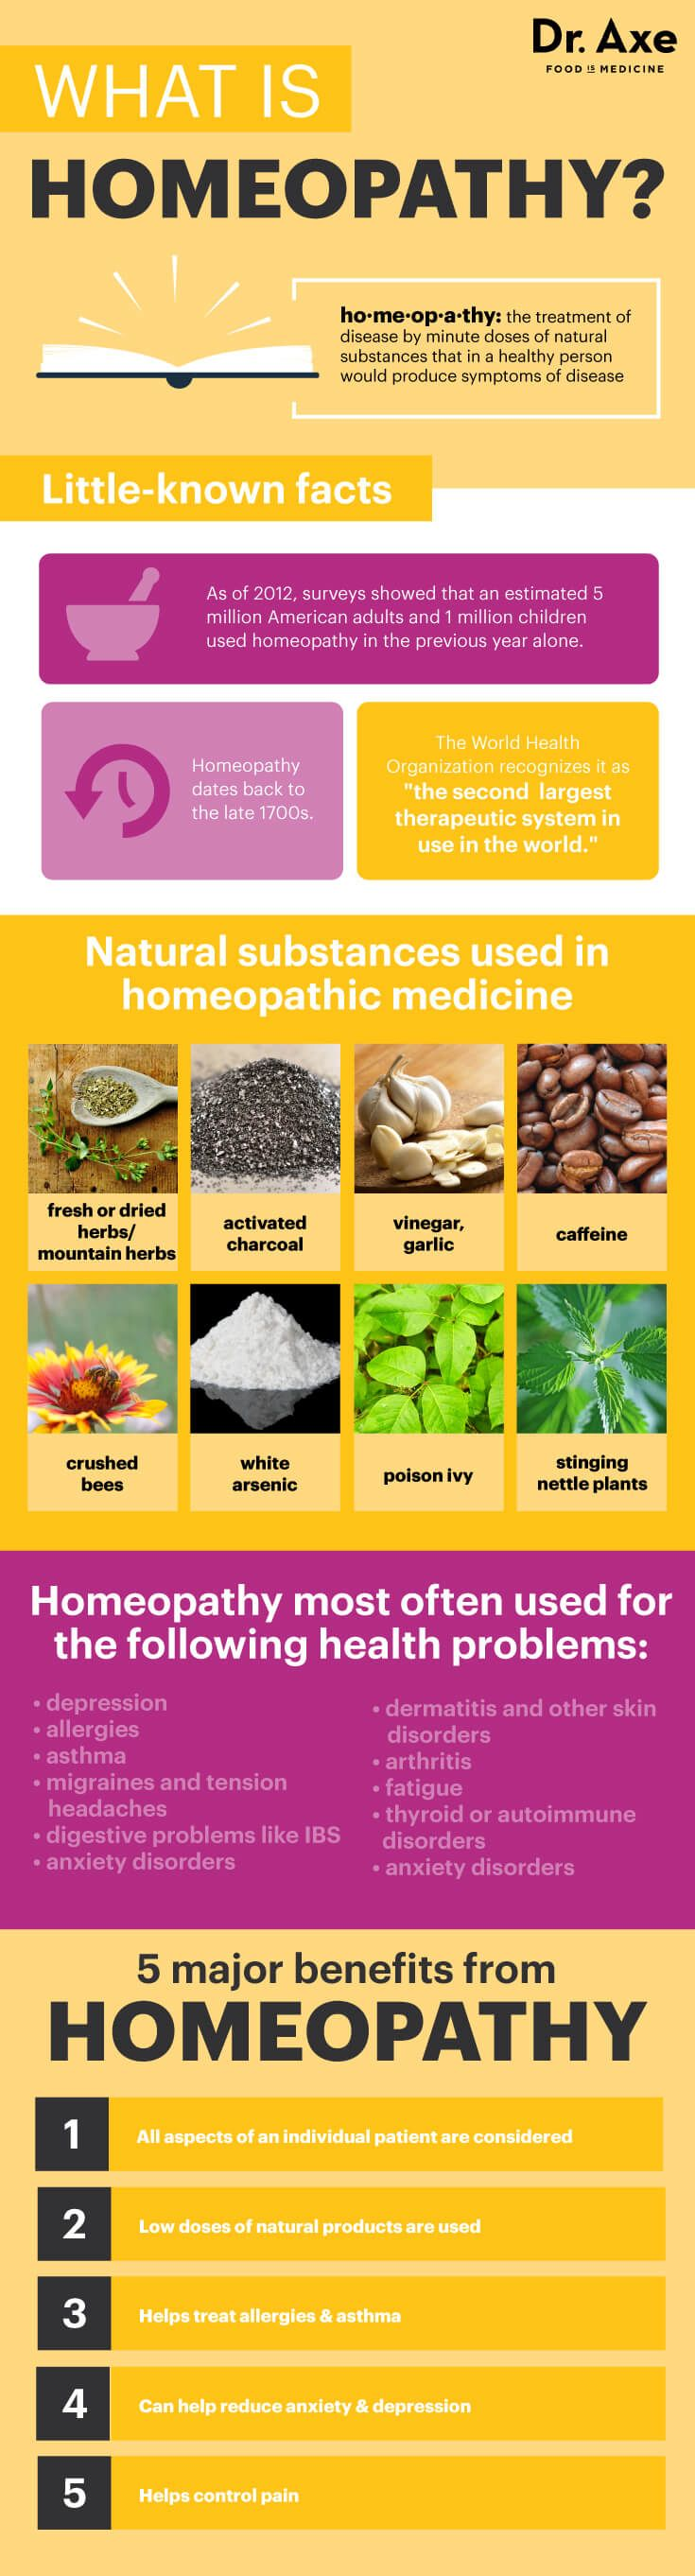 Center for holistic herbal therapy - Homeopathy How It Works 5 Major Benefits Natural Home Remediesholistic